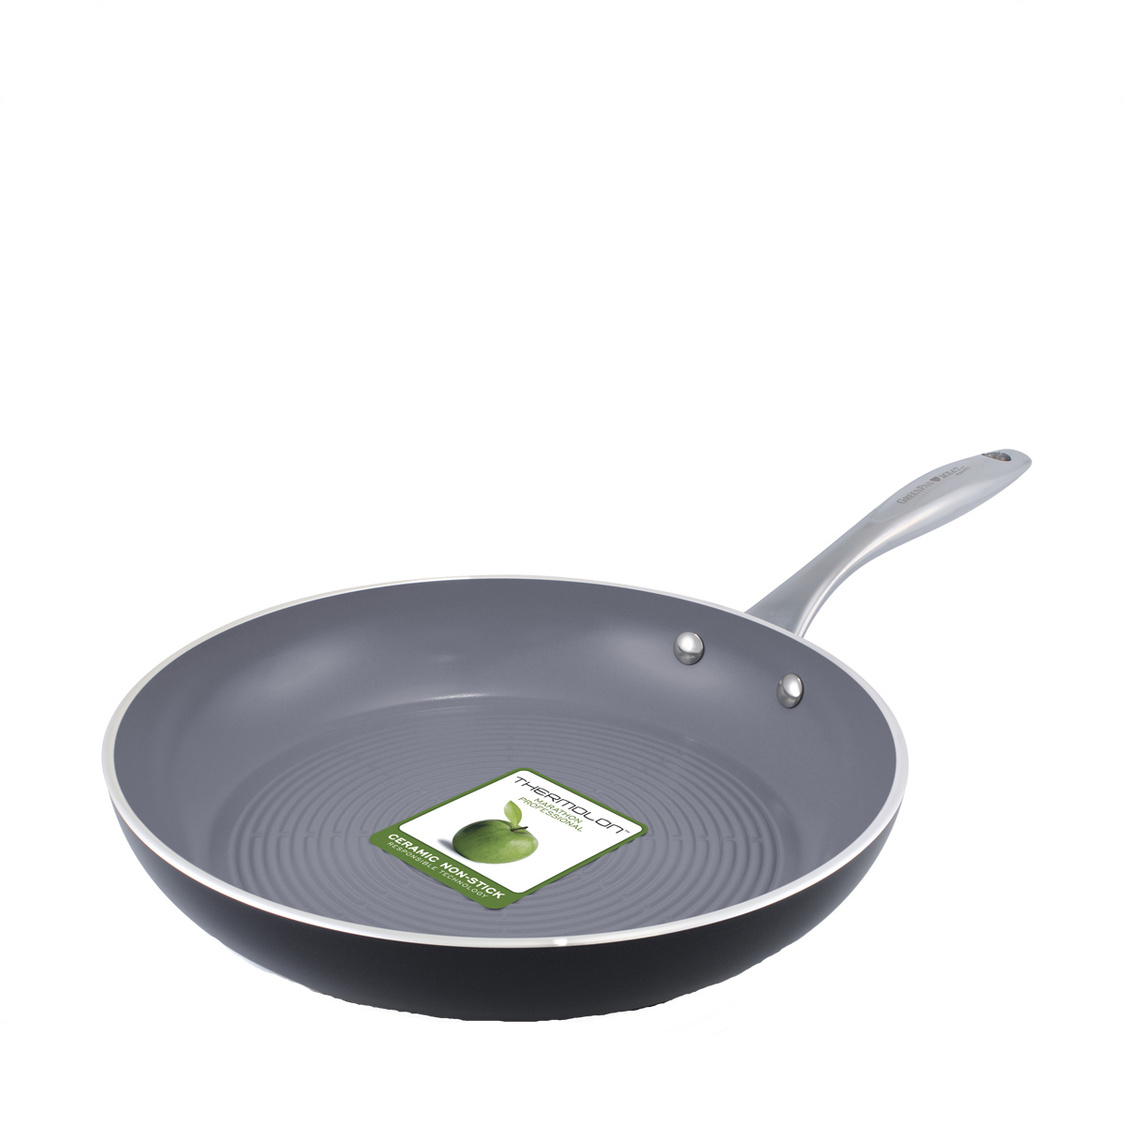 Milan 3D 28cm Frying Pan